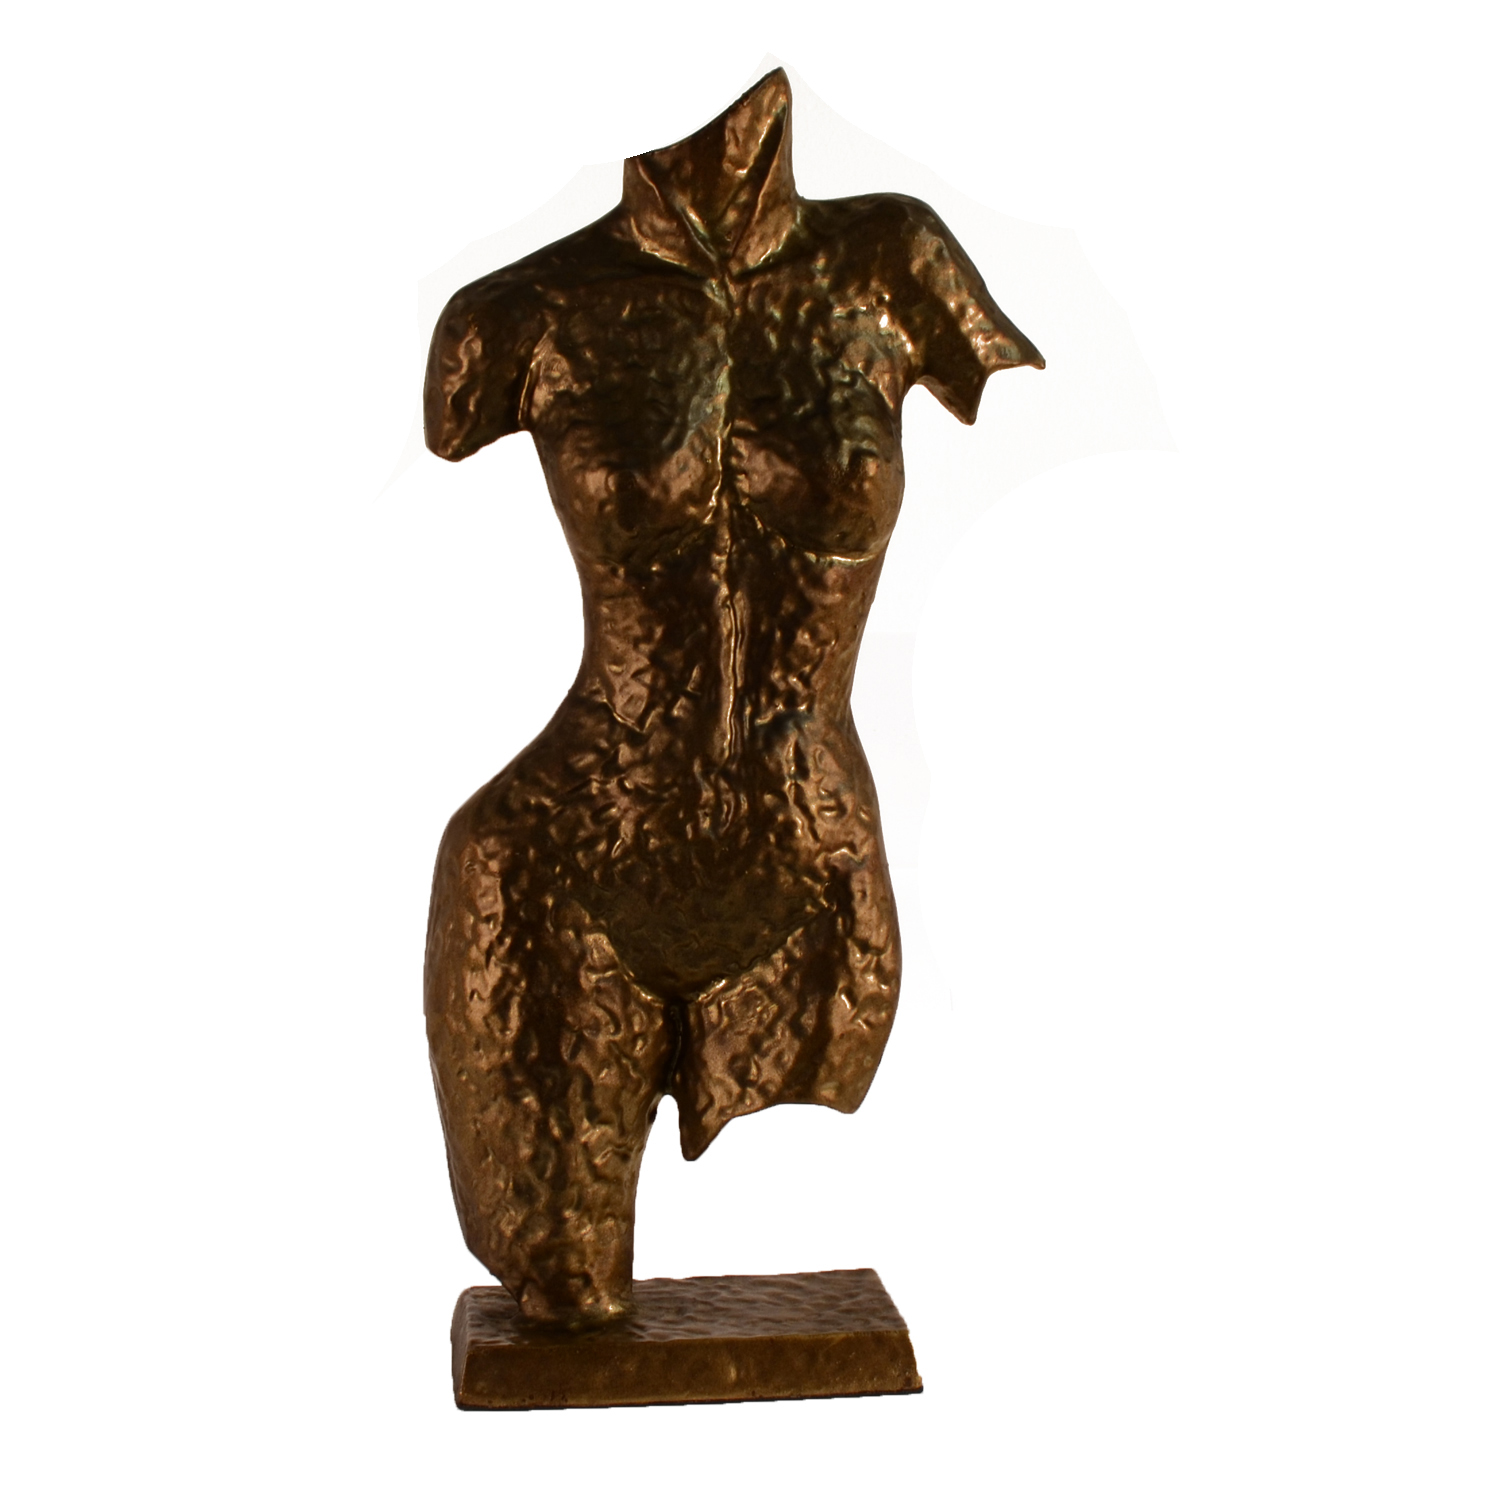 Elur Torso Sculpture Aluminium Ornament 38cm Golden Brown - Ruby's Garden Boutique